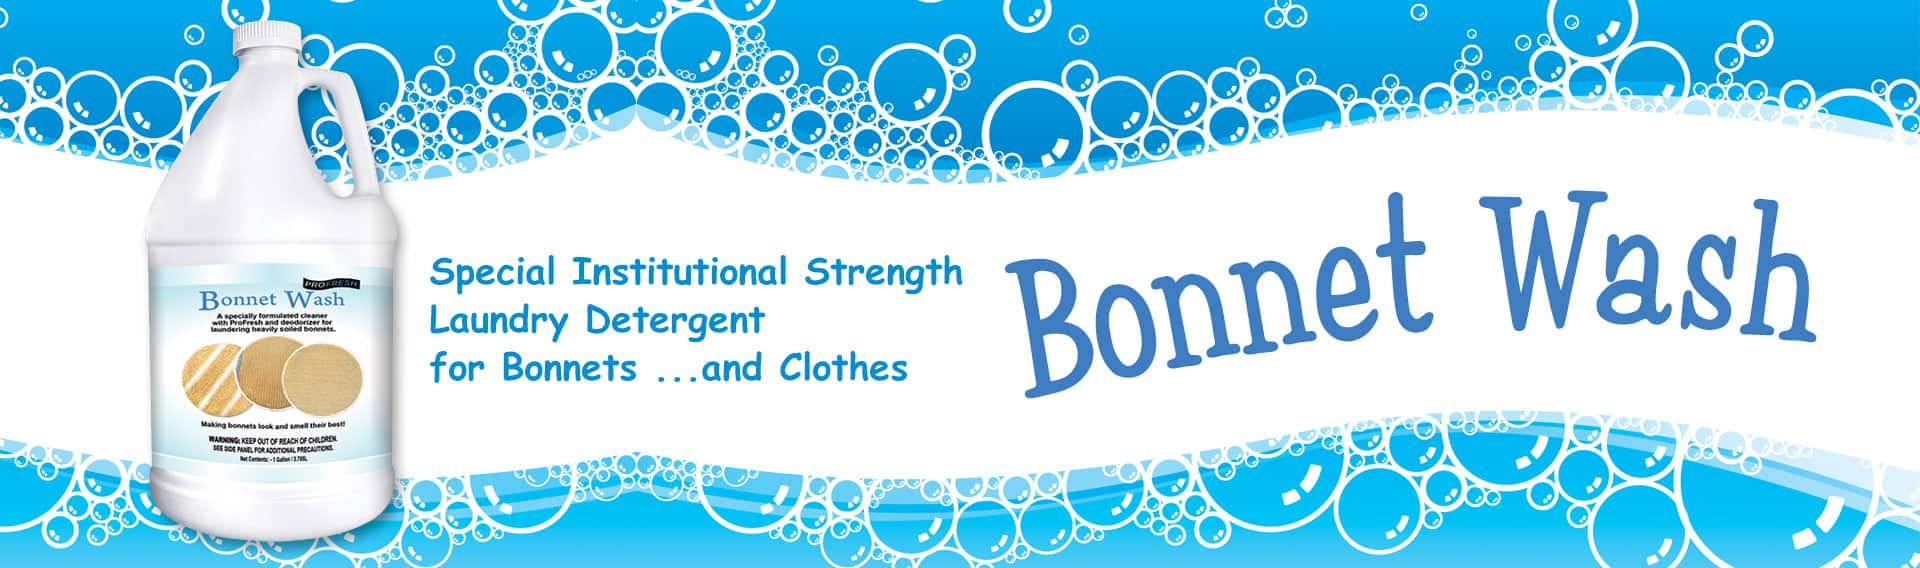 special bonnet cleaning product